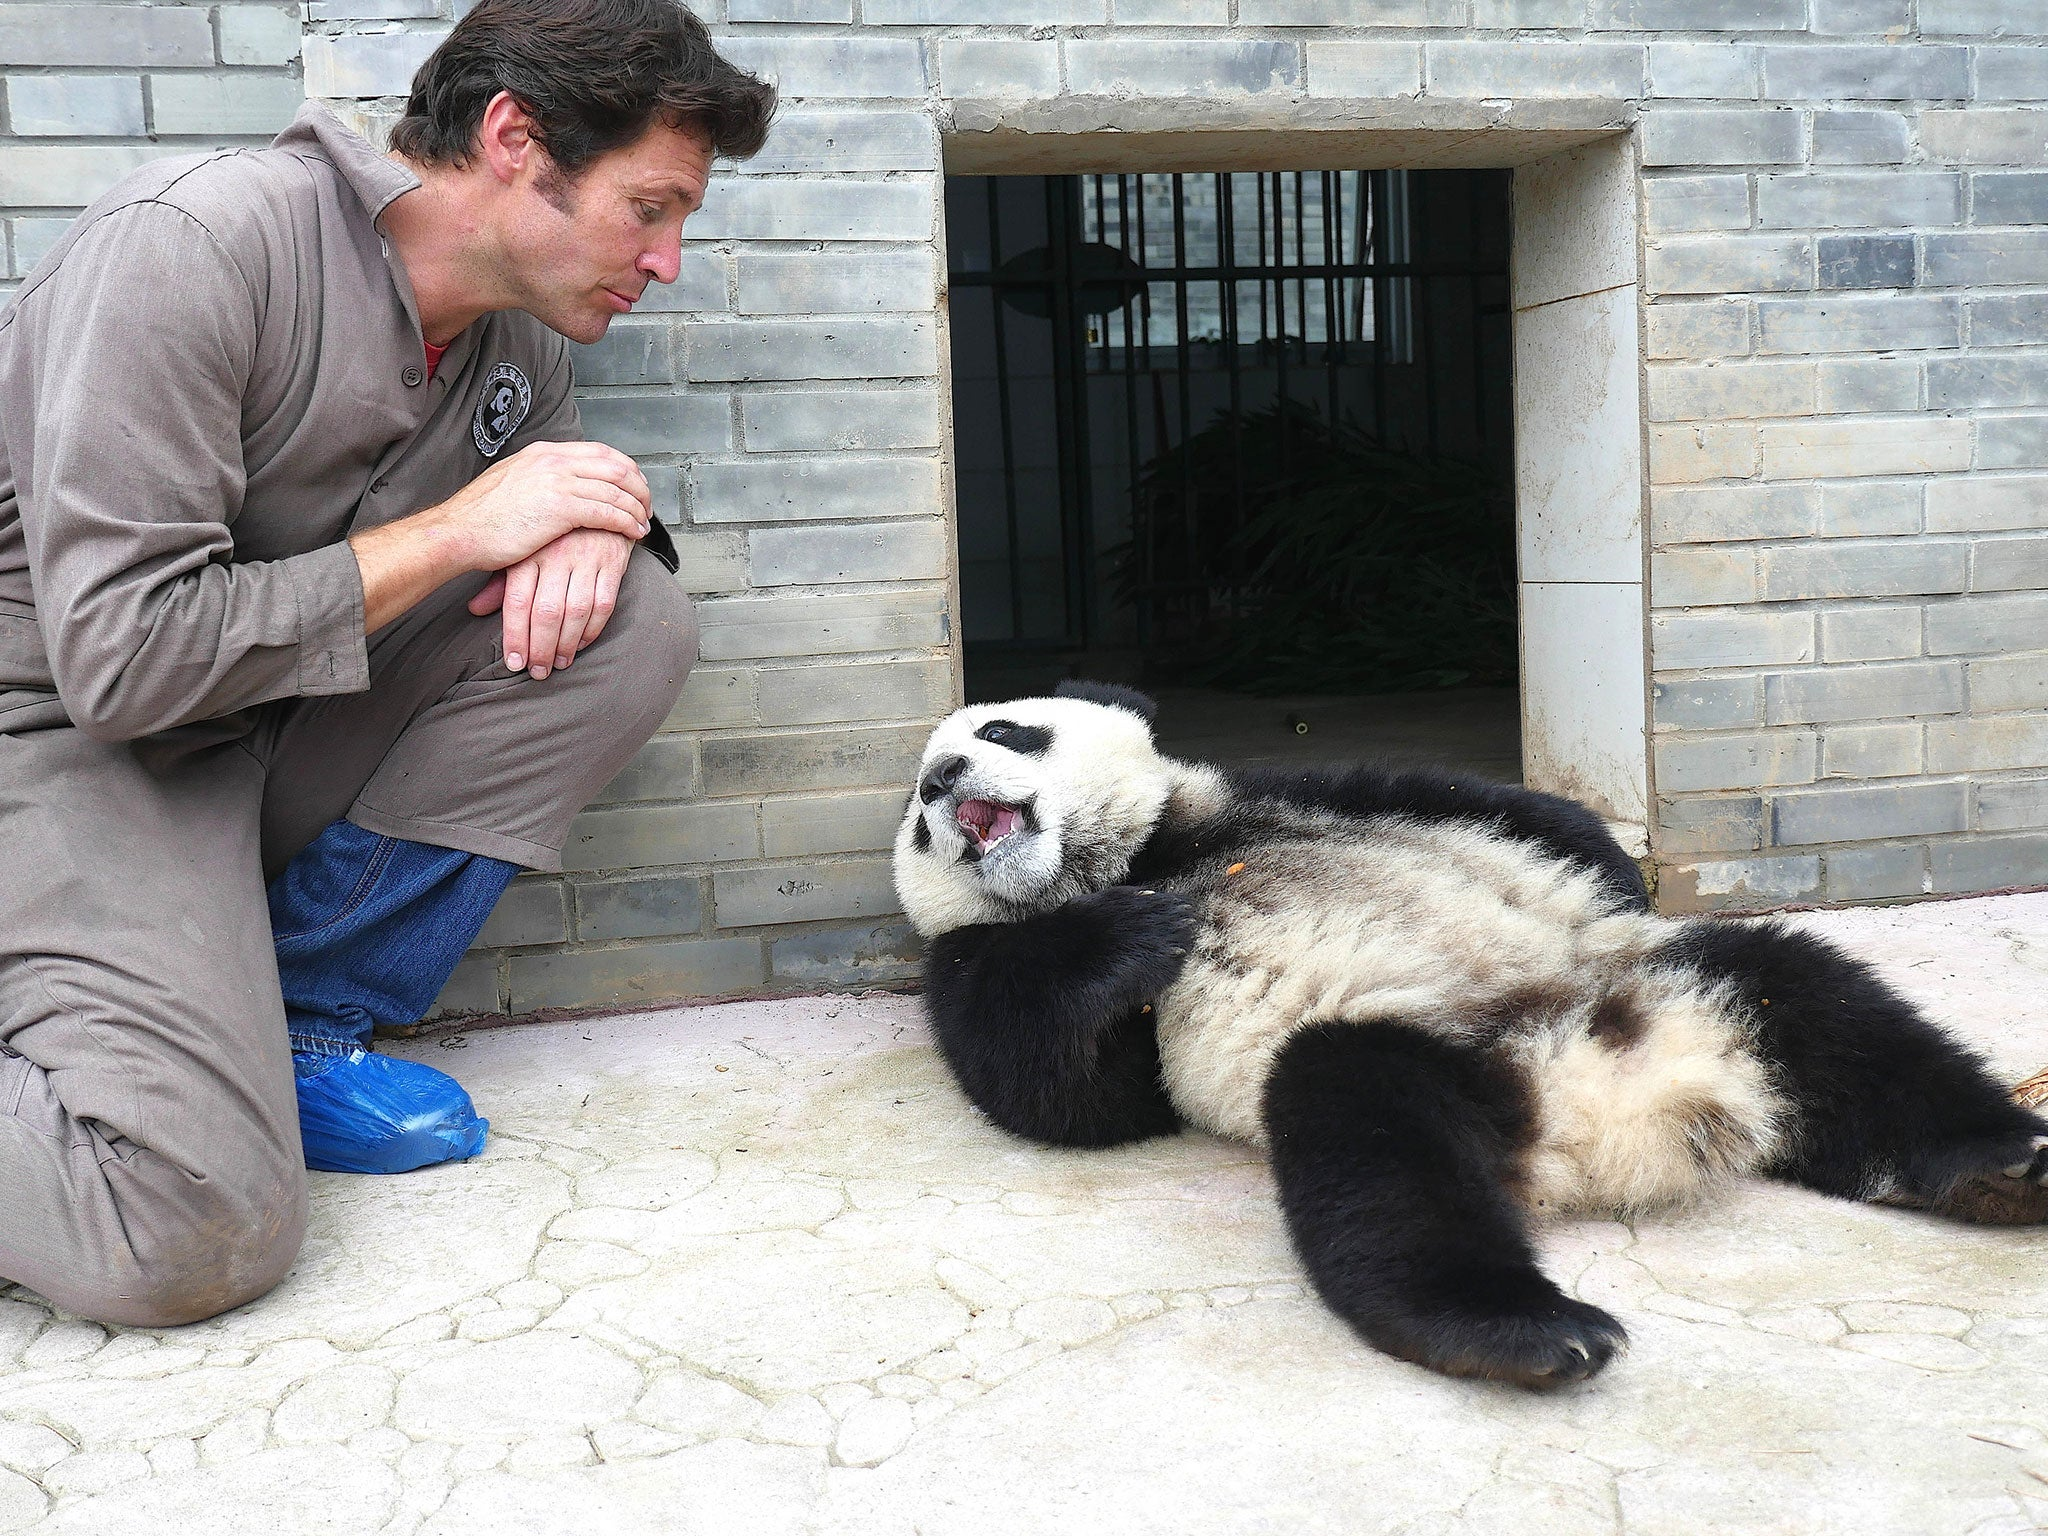 Festival Travel pandas in Moscow: days of culture Chengdu 18